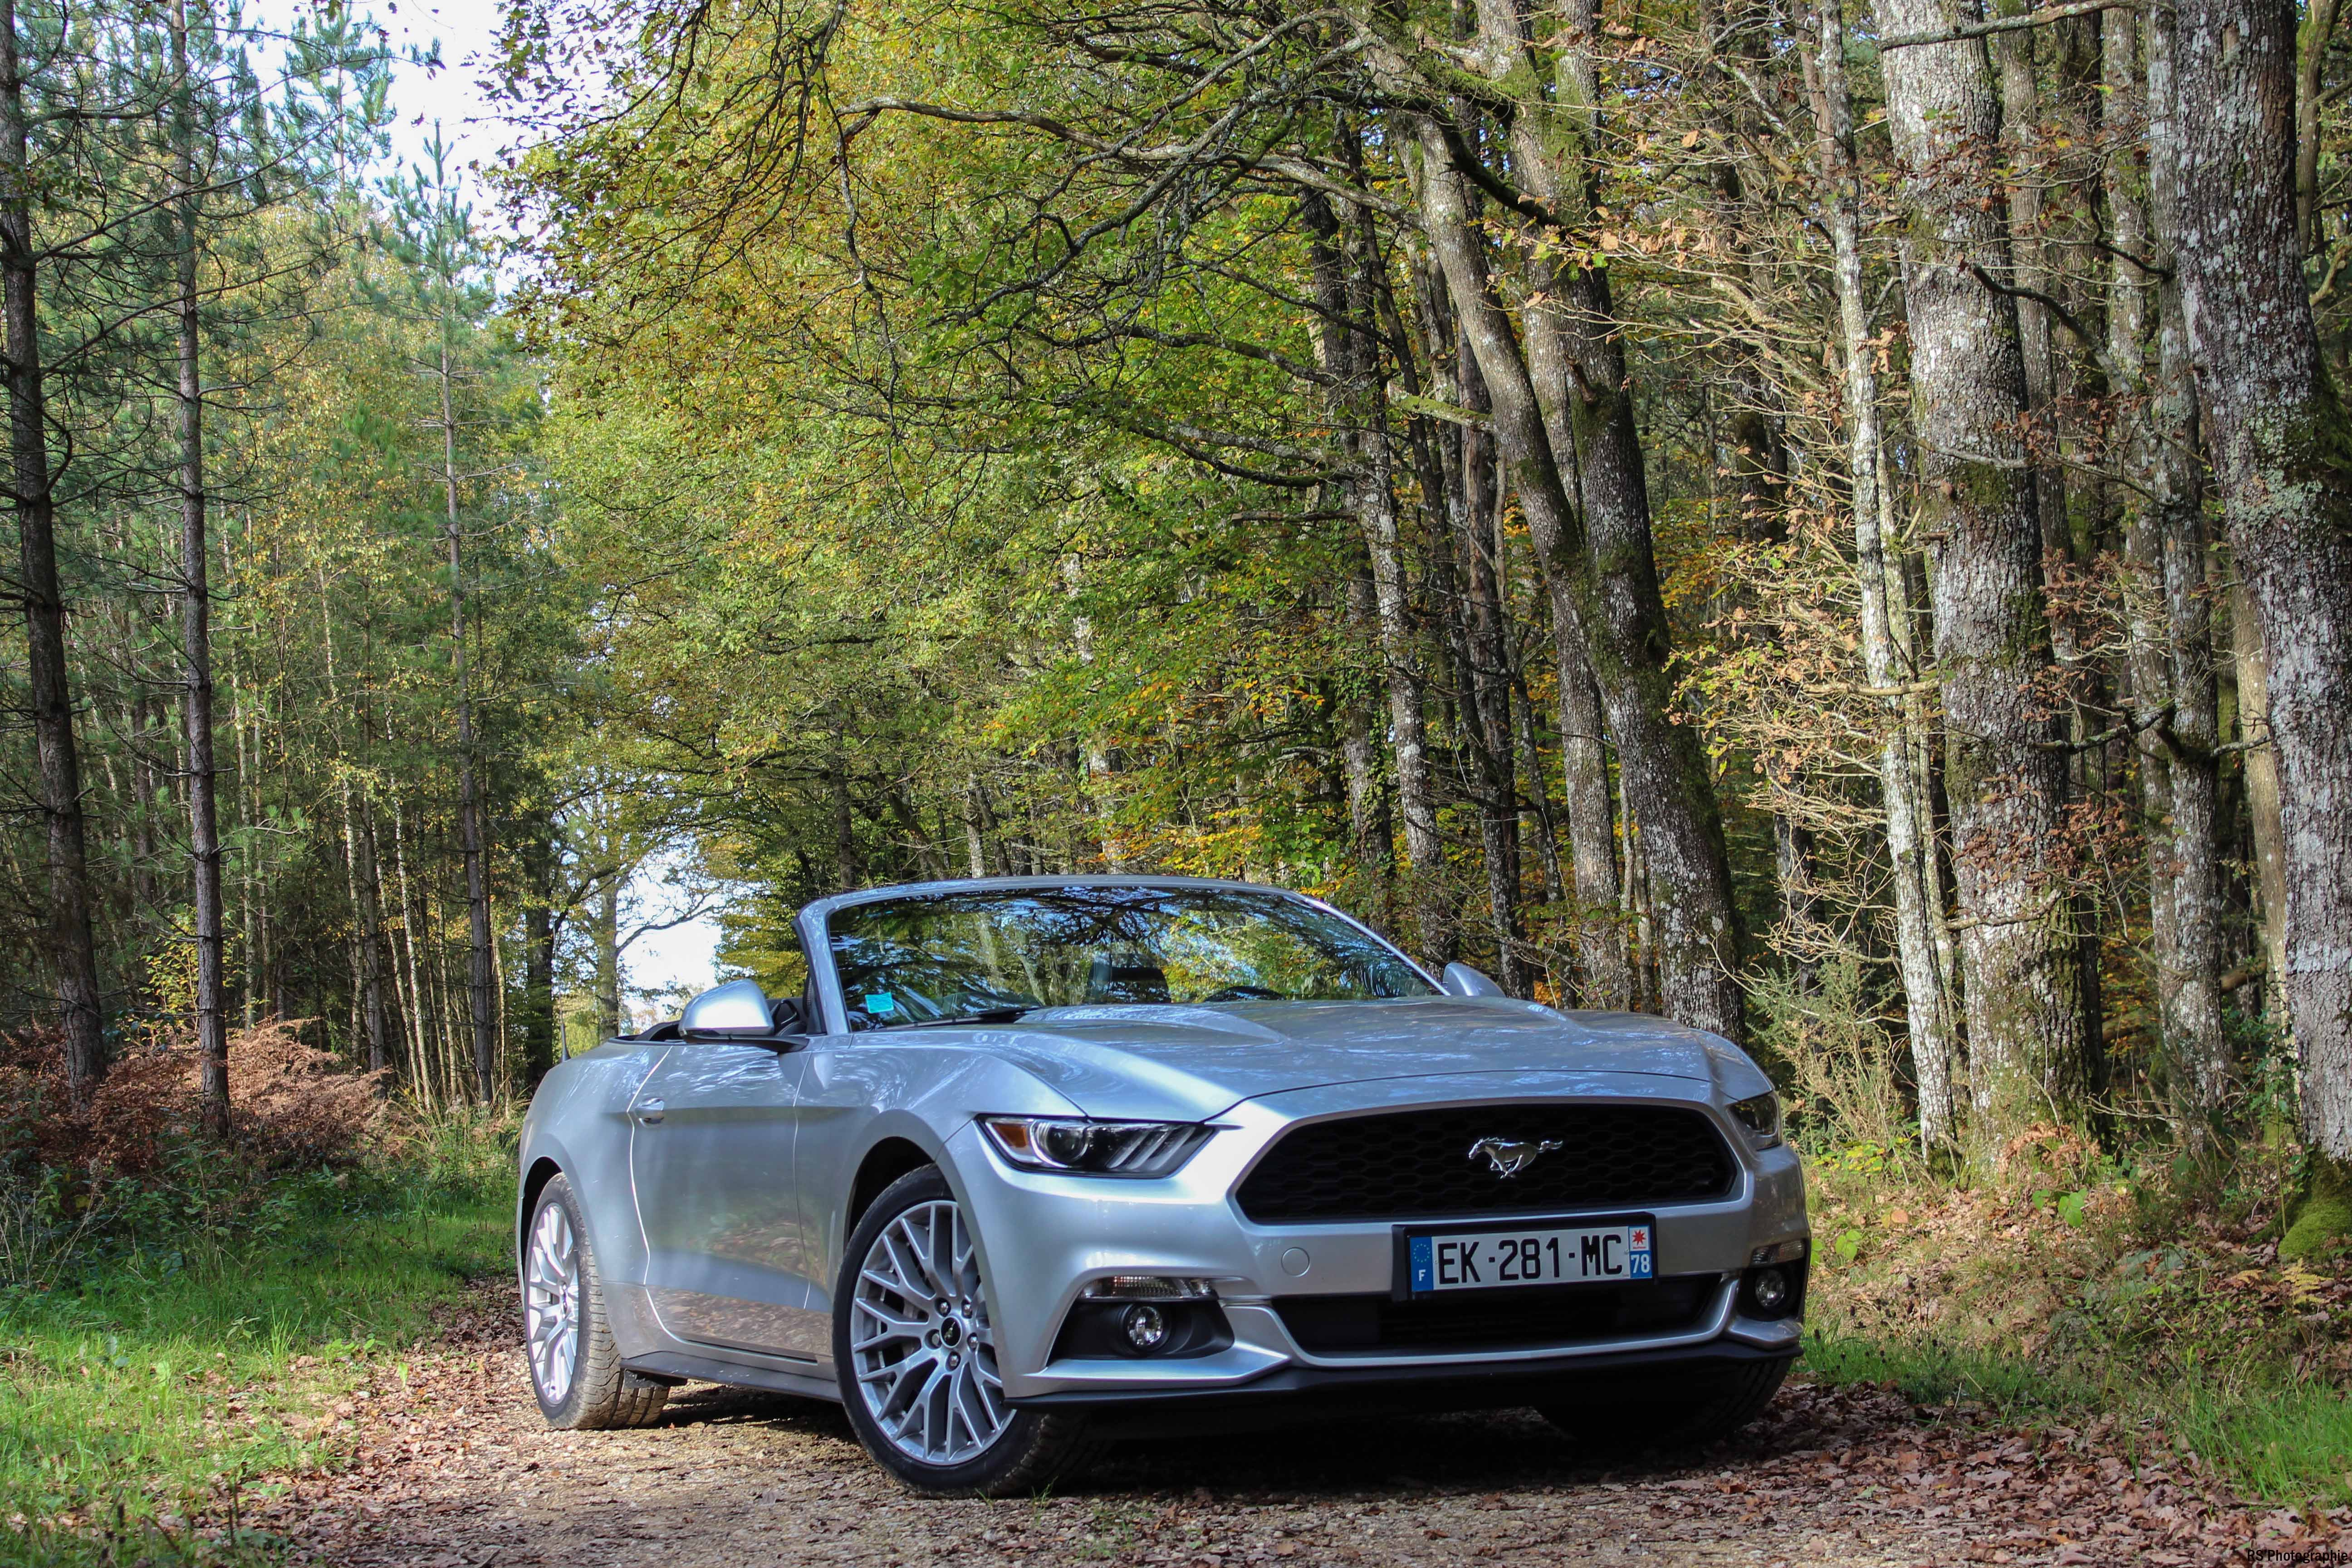 fordmustangeconvertible44-ford-mustang-convertible-ecoboost-avant-front-Arnaud Demasier-RSPhotographie